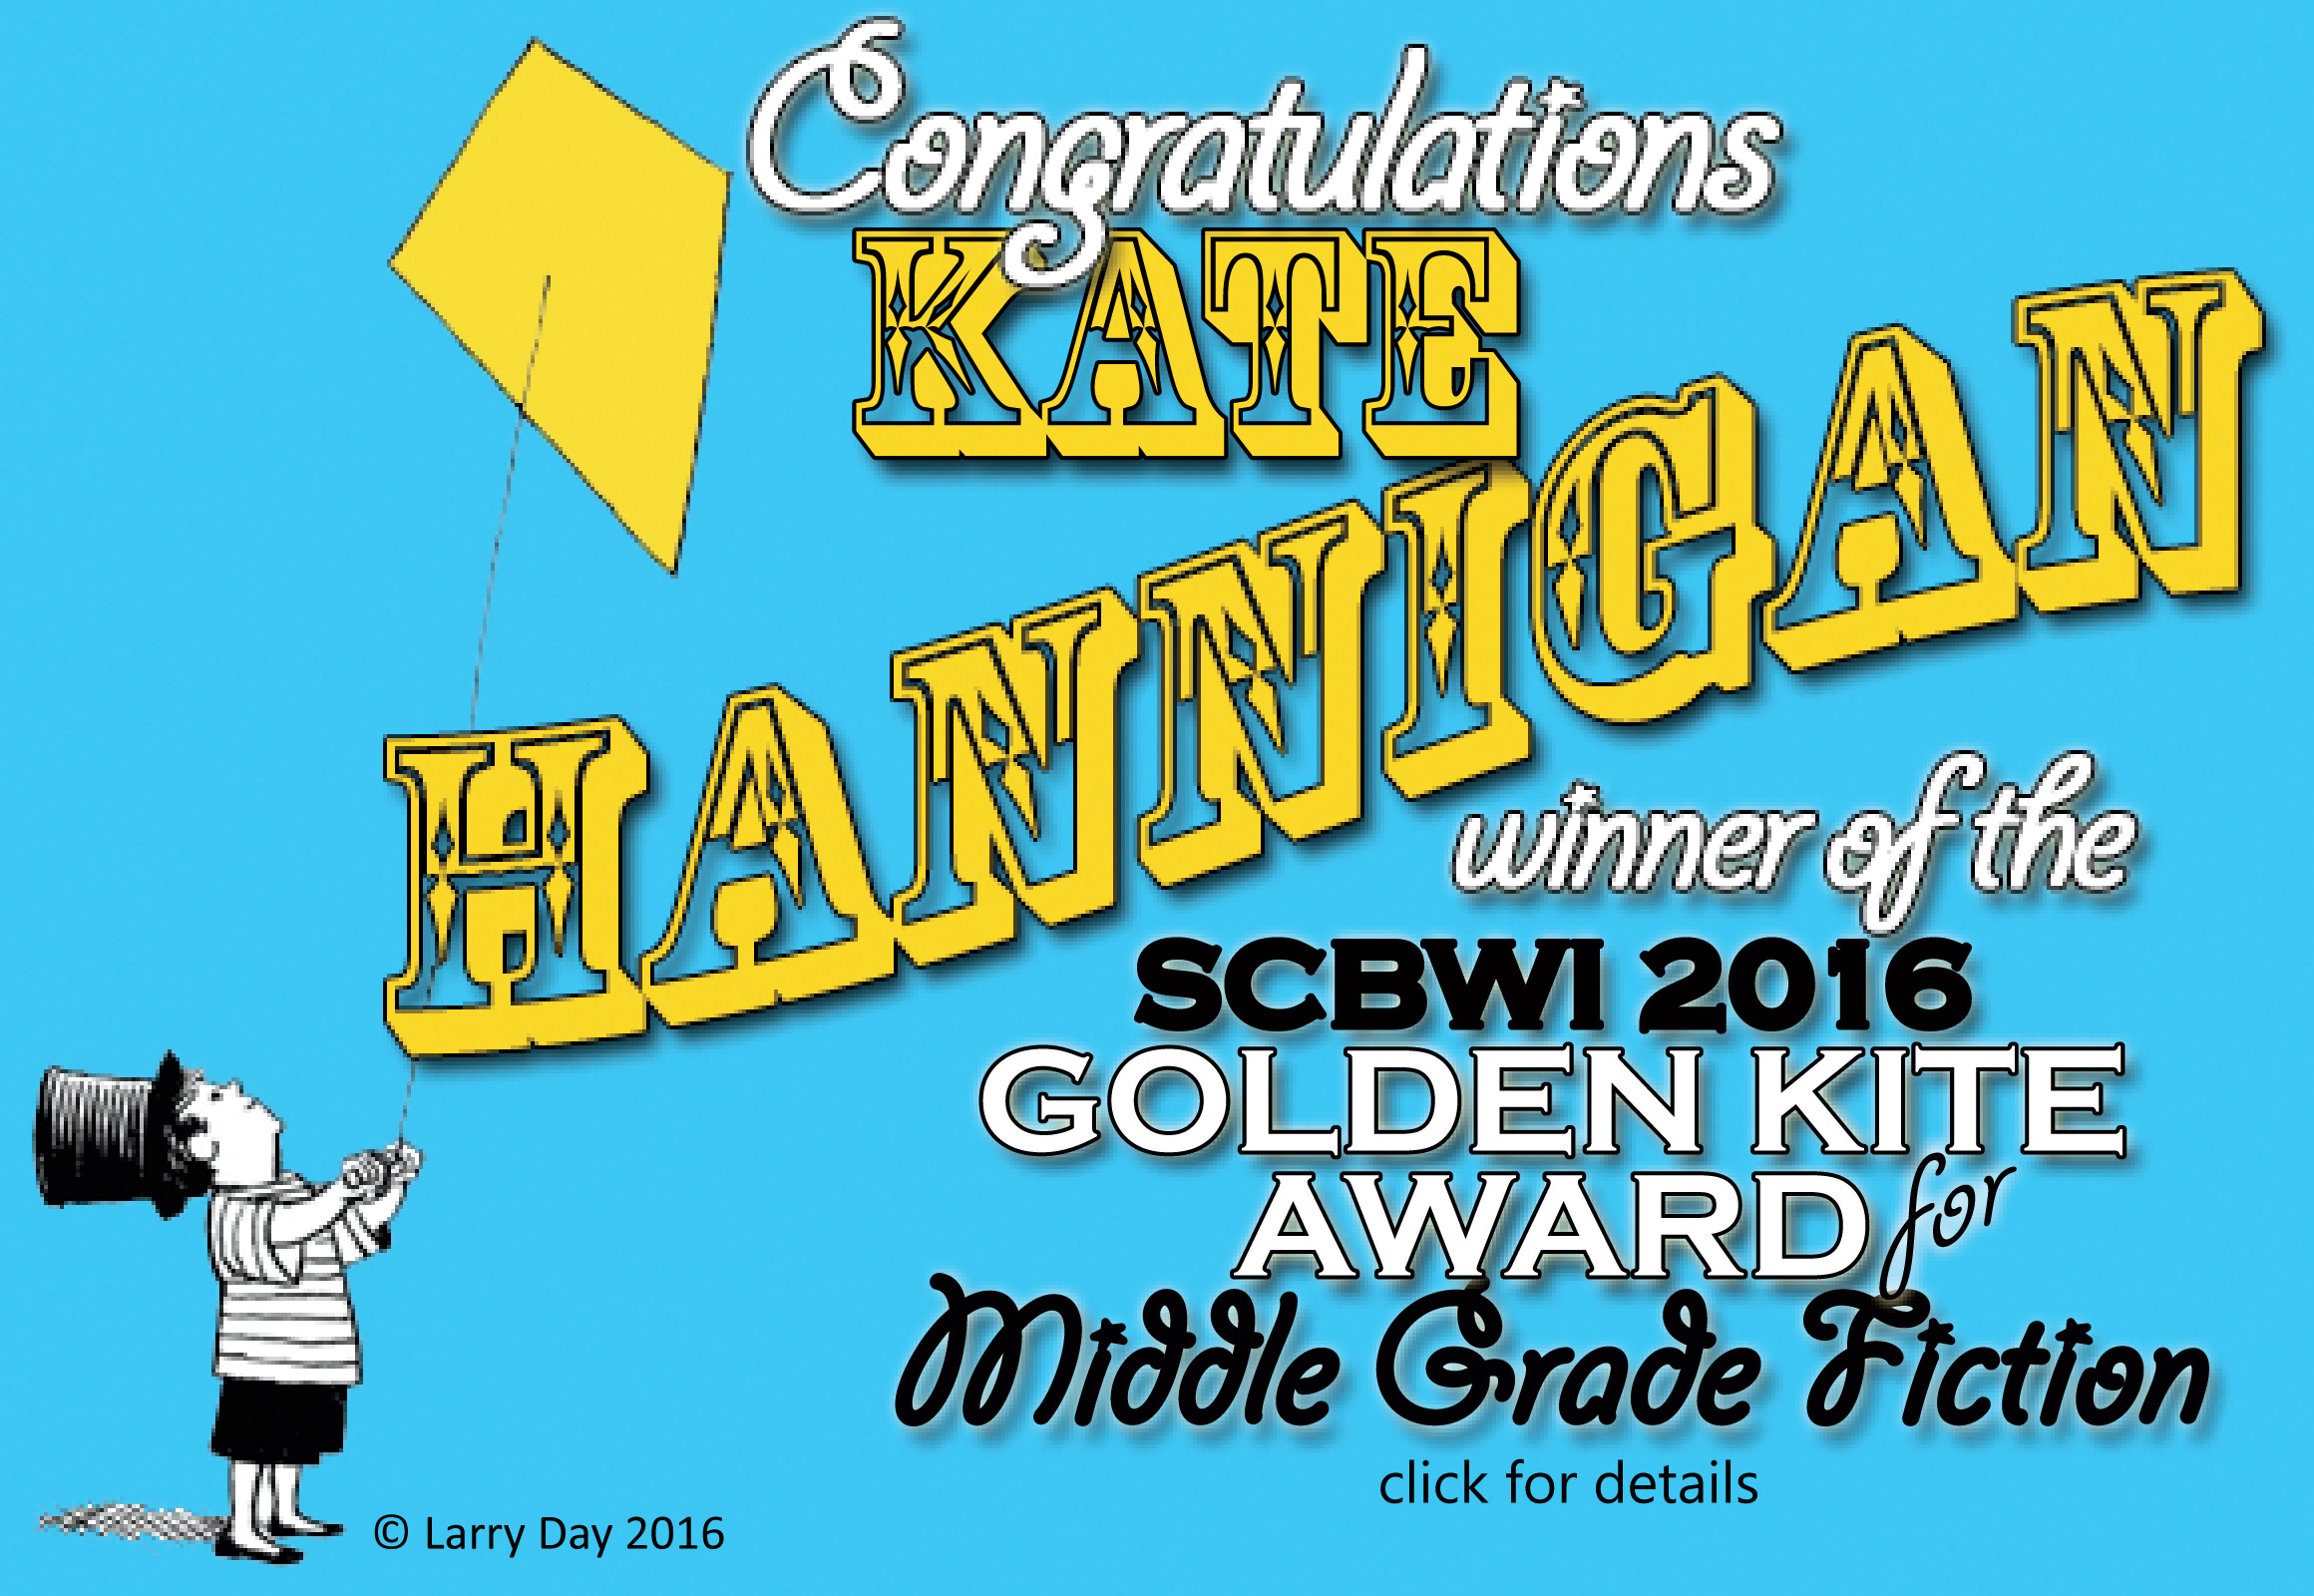 Congratulations Kate Hannigan, winner of the 2016 Golden Kite Award for Middle Grade/Young Reader Fiction:https://www.scbwi.org/2016-golden-kite-award-winners/ for her novel, The Detective's Assistant (Little/Brown, 2015)